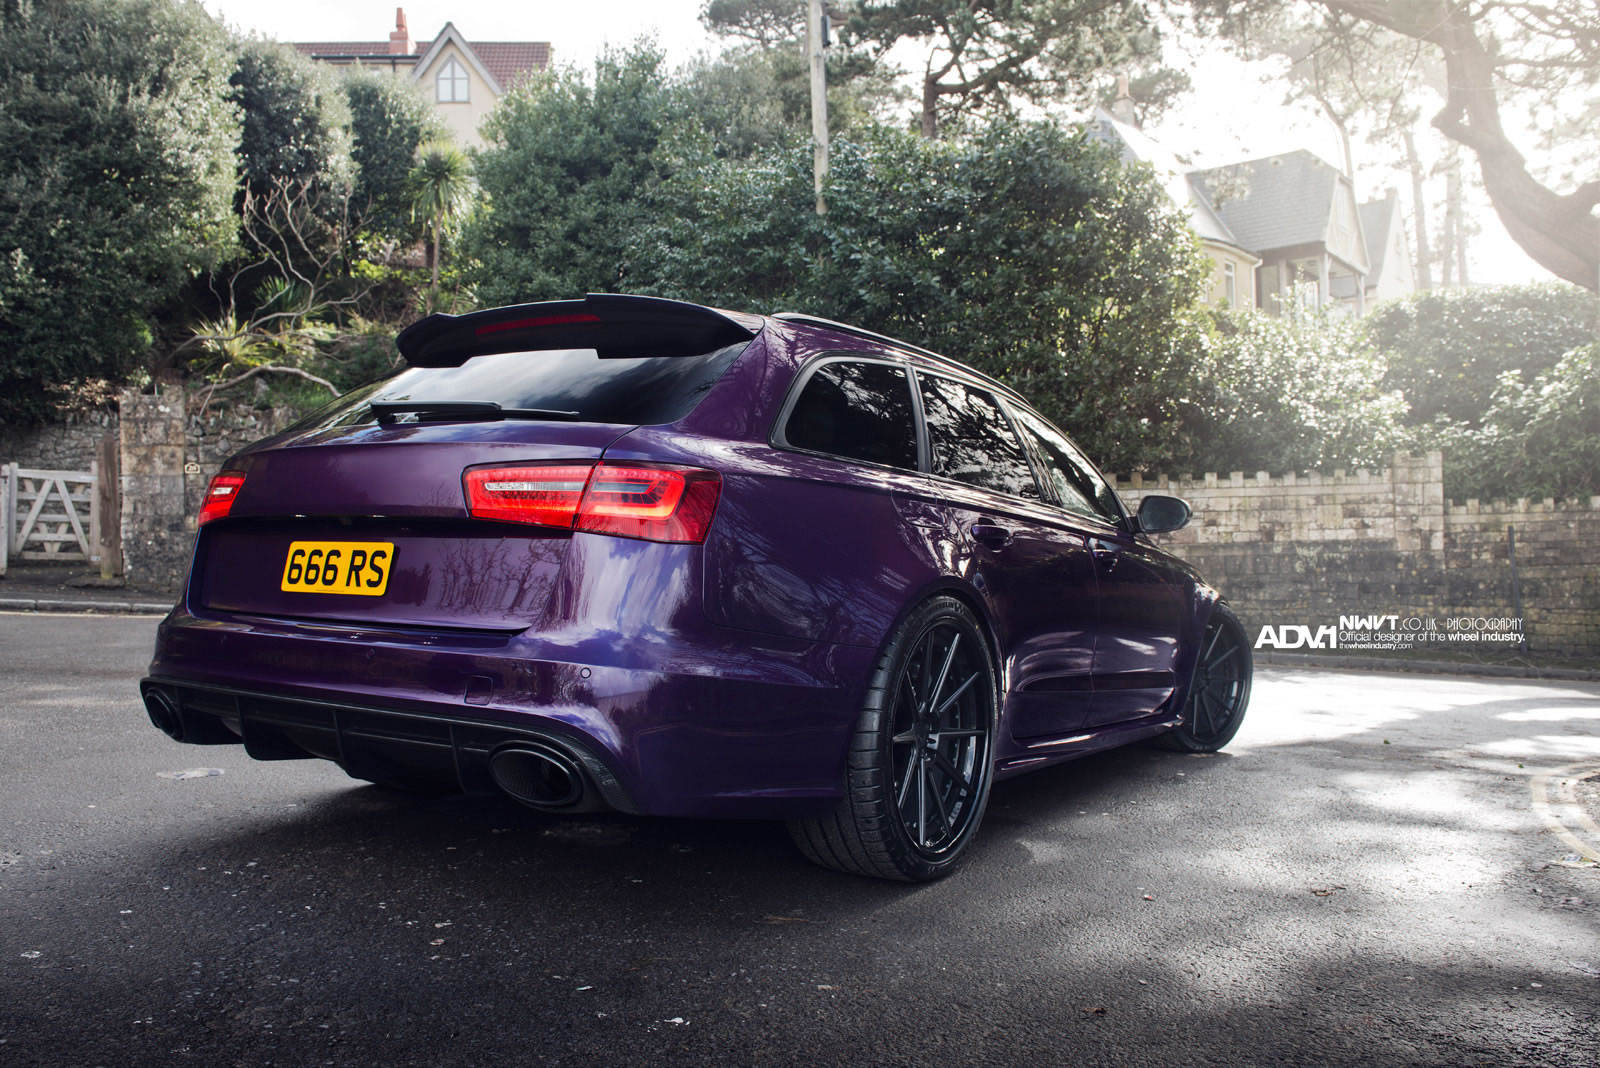 Anderson Ford Mazda >> 2014 Audi RS6 by ADV.1 - rear photo, purple color, size 1600 x 1068, nr. 9/16 - RSsportscars.com